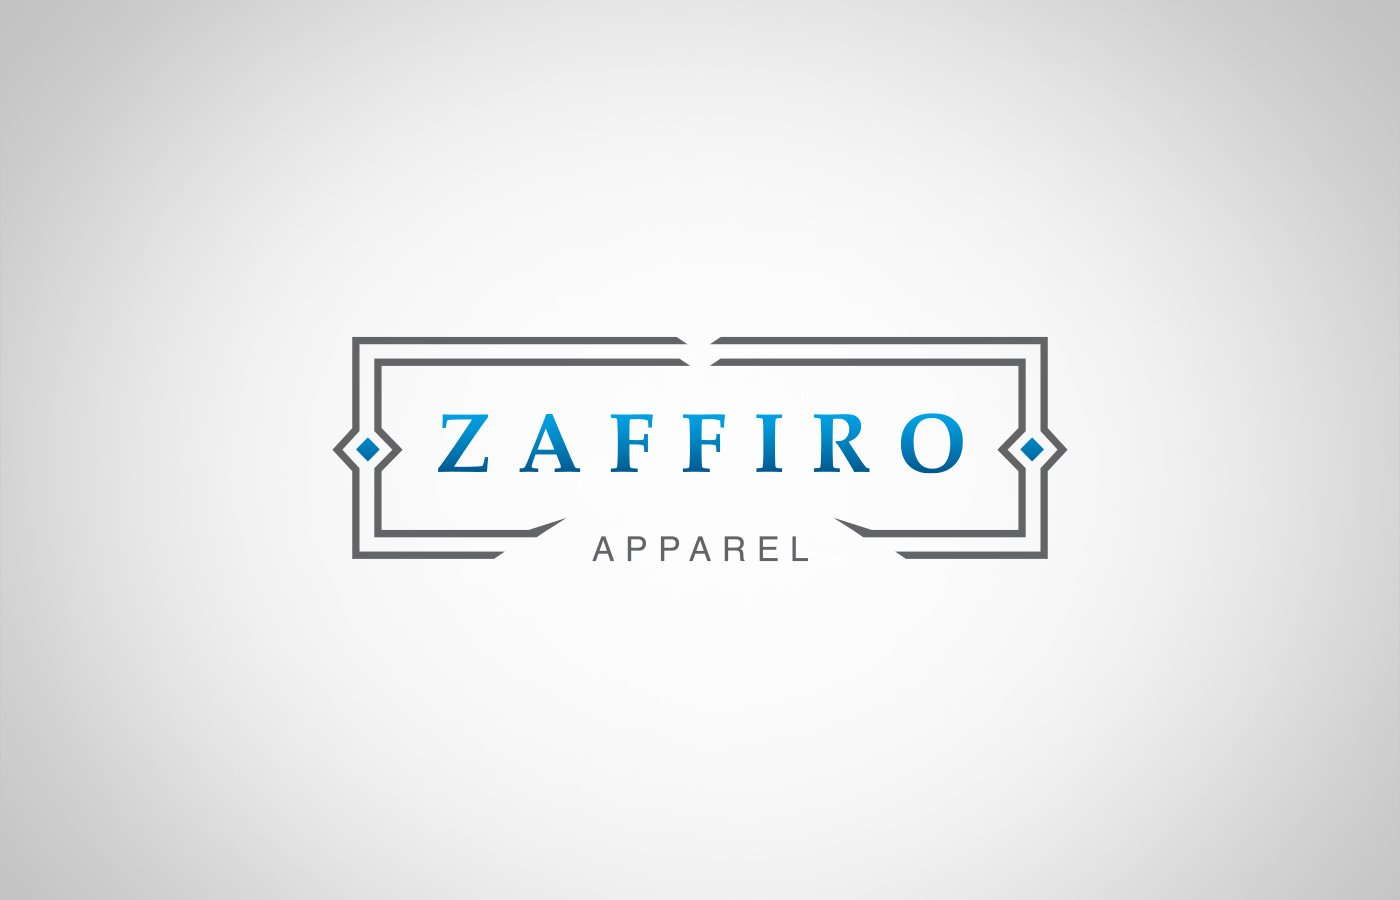 Edmonton Graphic Design | Zaffiro Apparel Logo